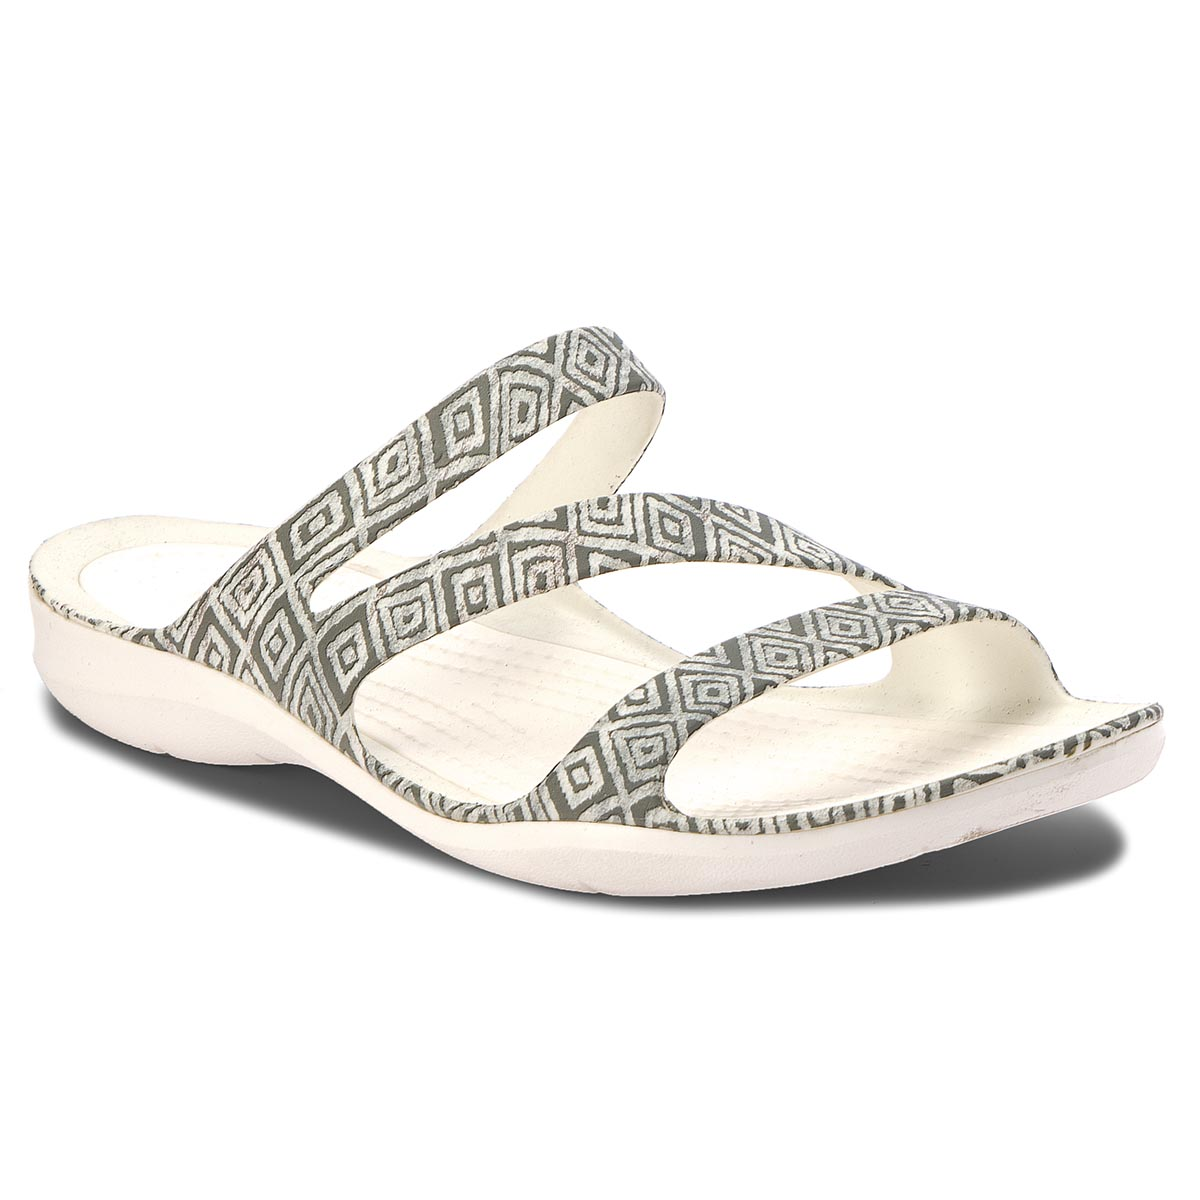 Klapki CROCS - Swiftwater Graphic Sandal W 204461 Grey Diamond/White